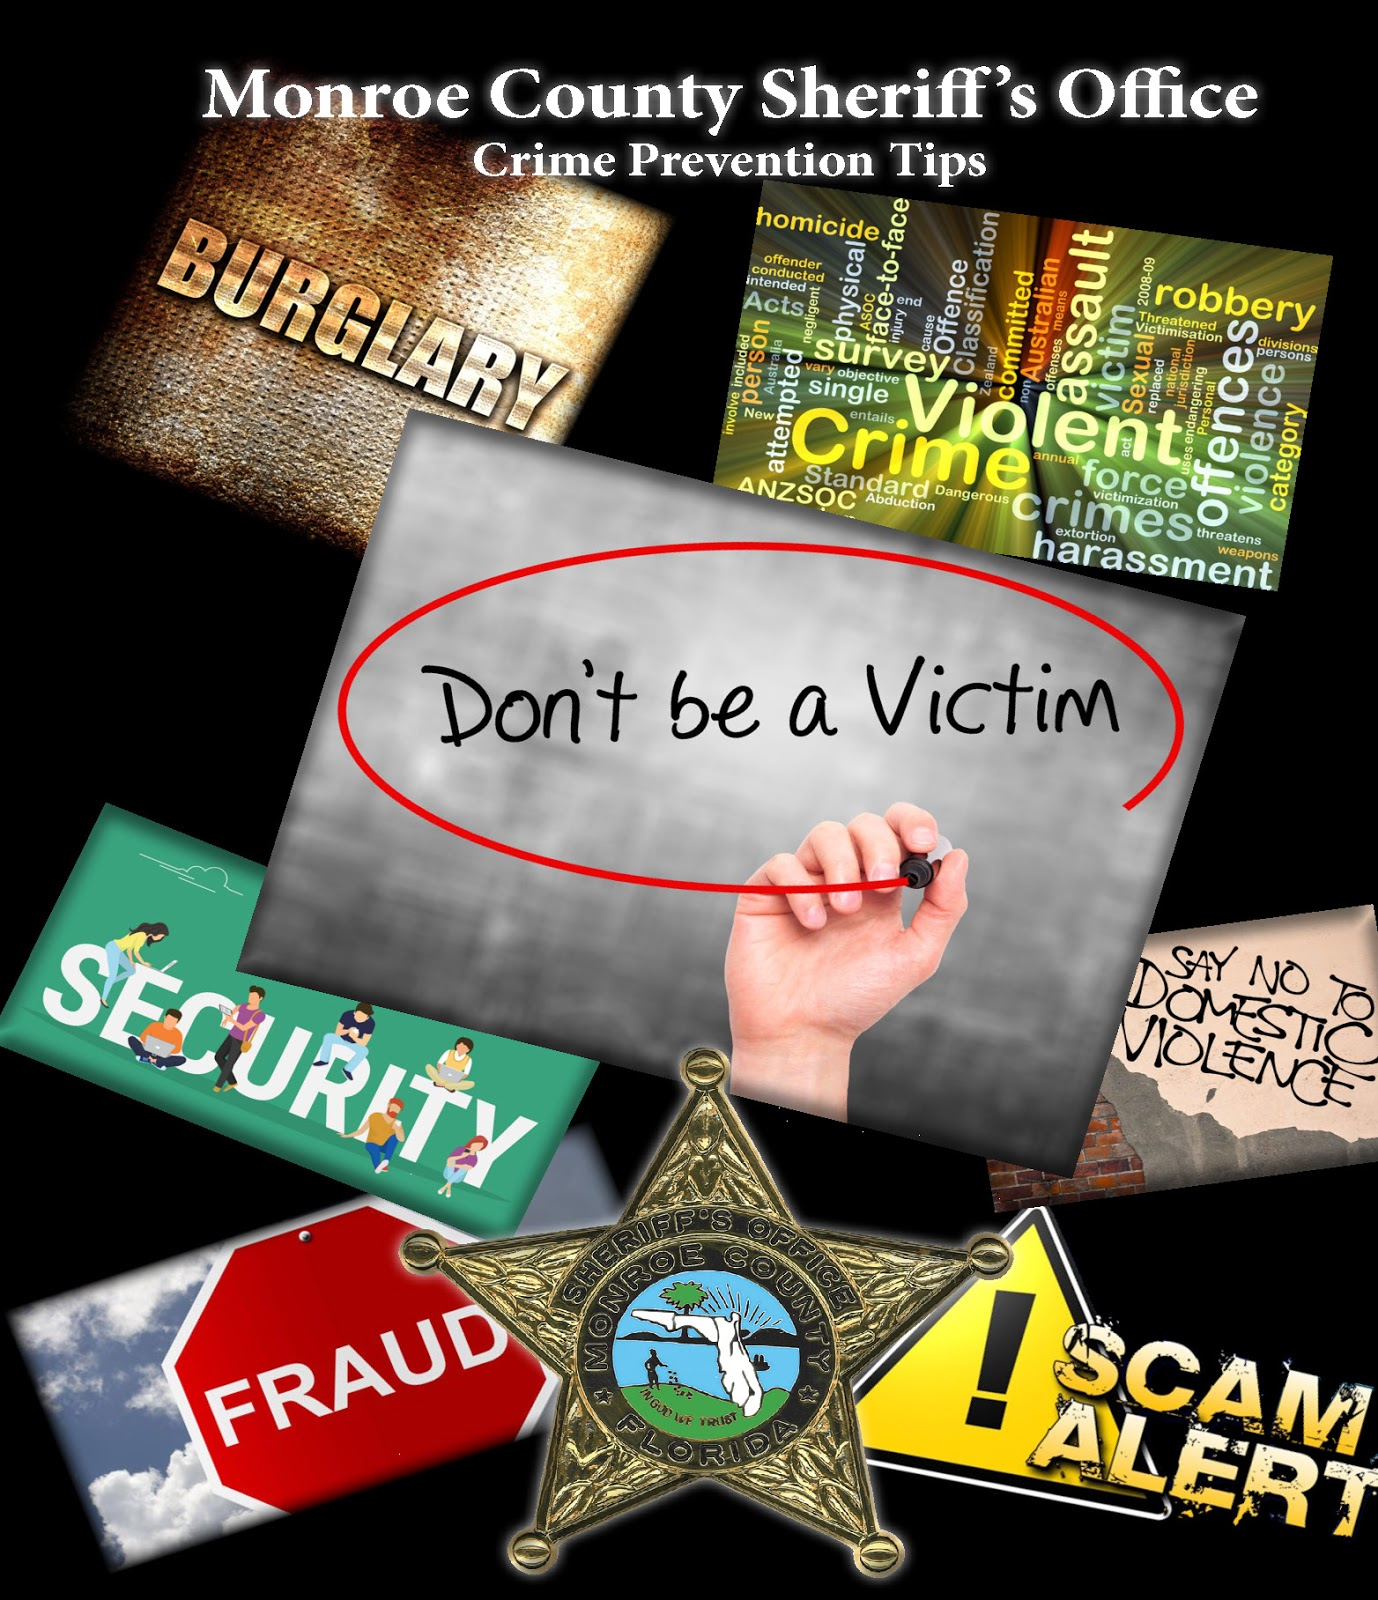 crime prevention What is crime prevention it is a pattern of attitudes and behaviors directed at reducing the threat of crime and enhancing the sense of safety and security.